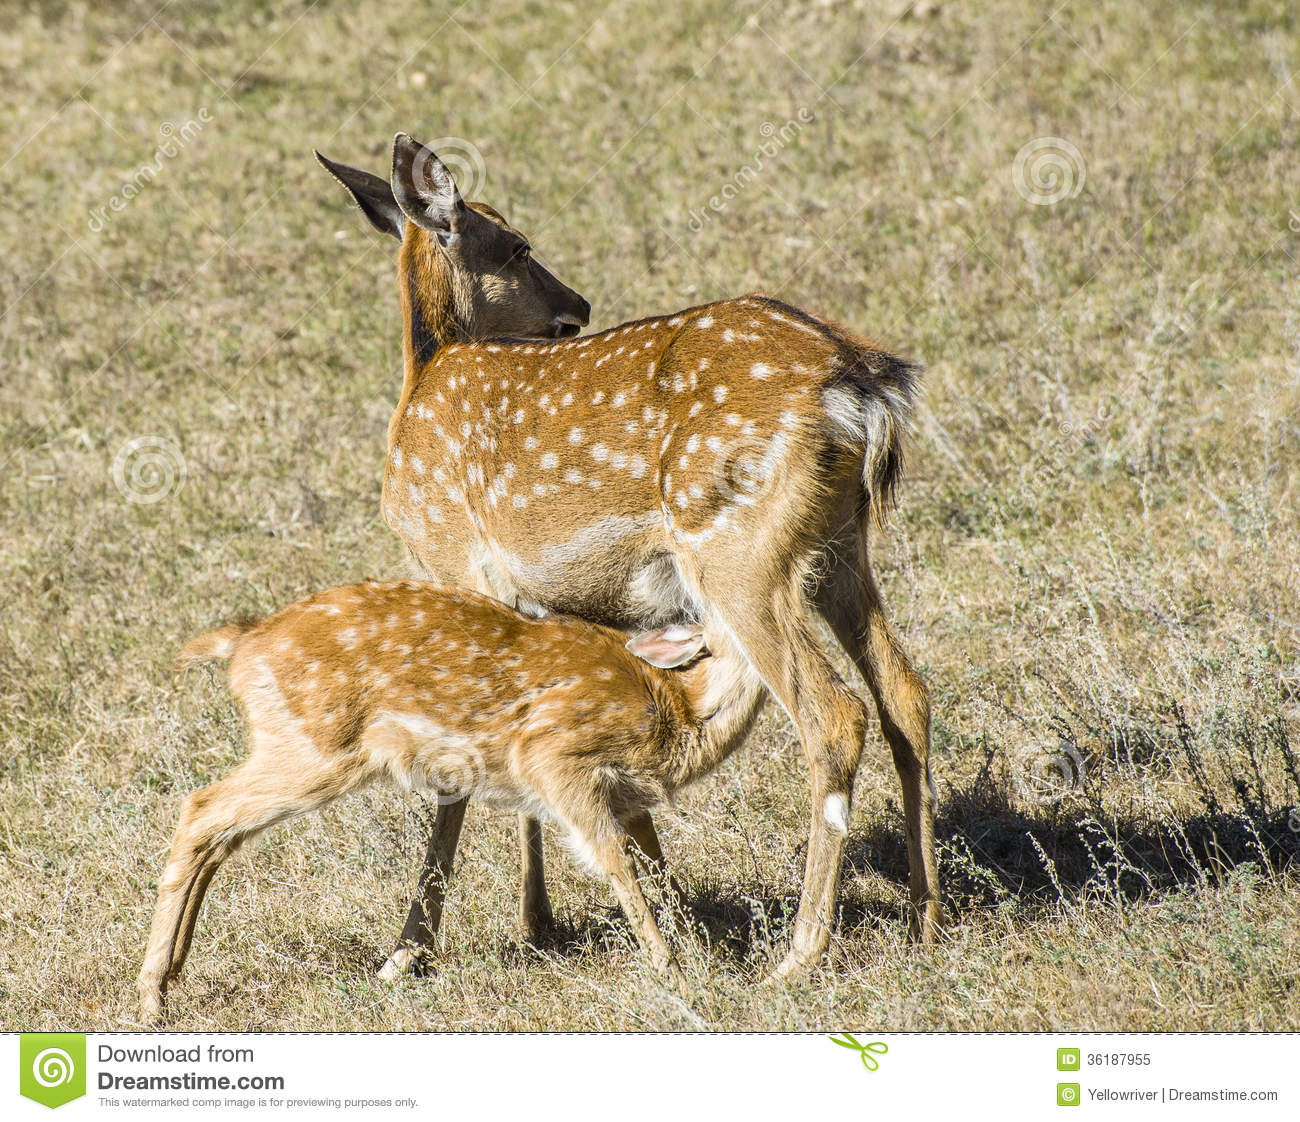 Spotted Deer Mother And Her Baby Stock Image - Image: 36187955